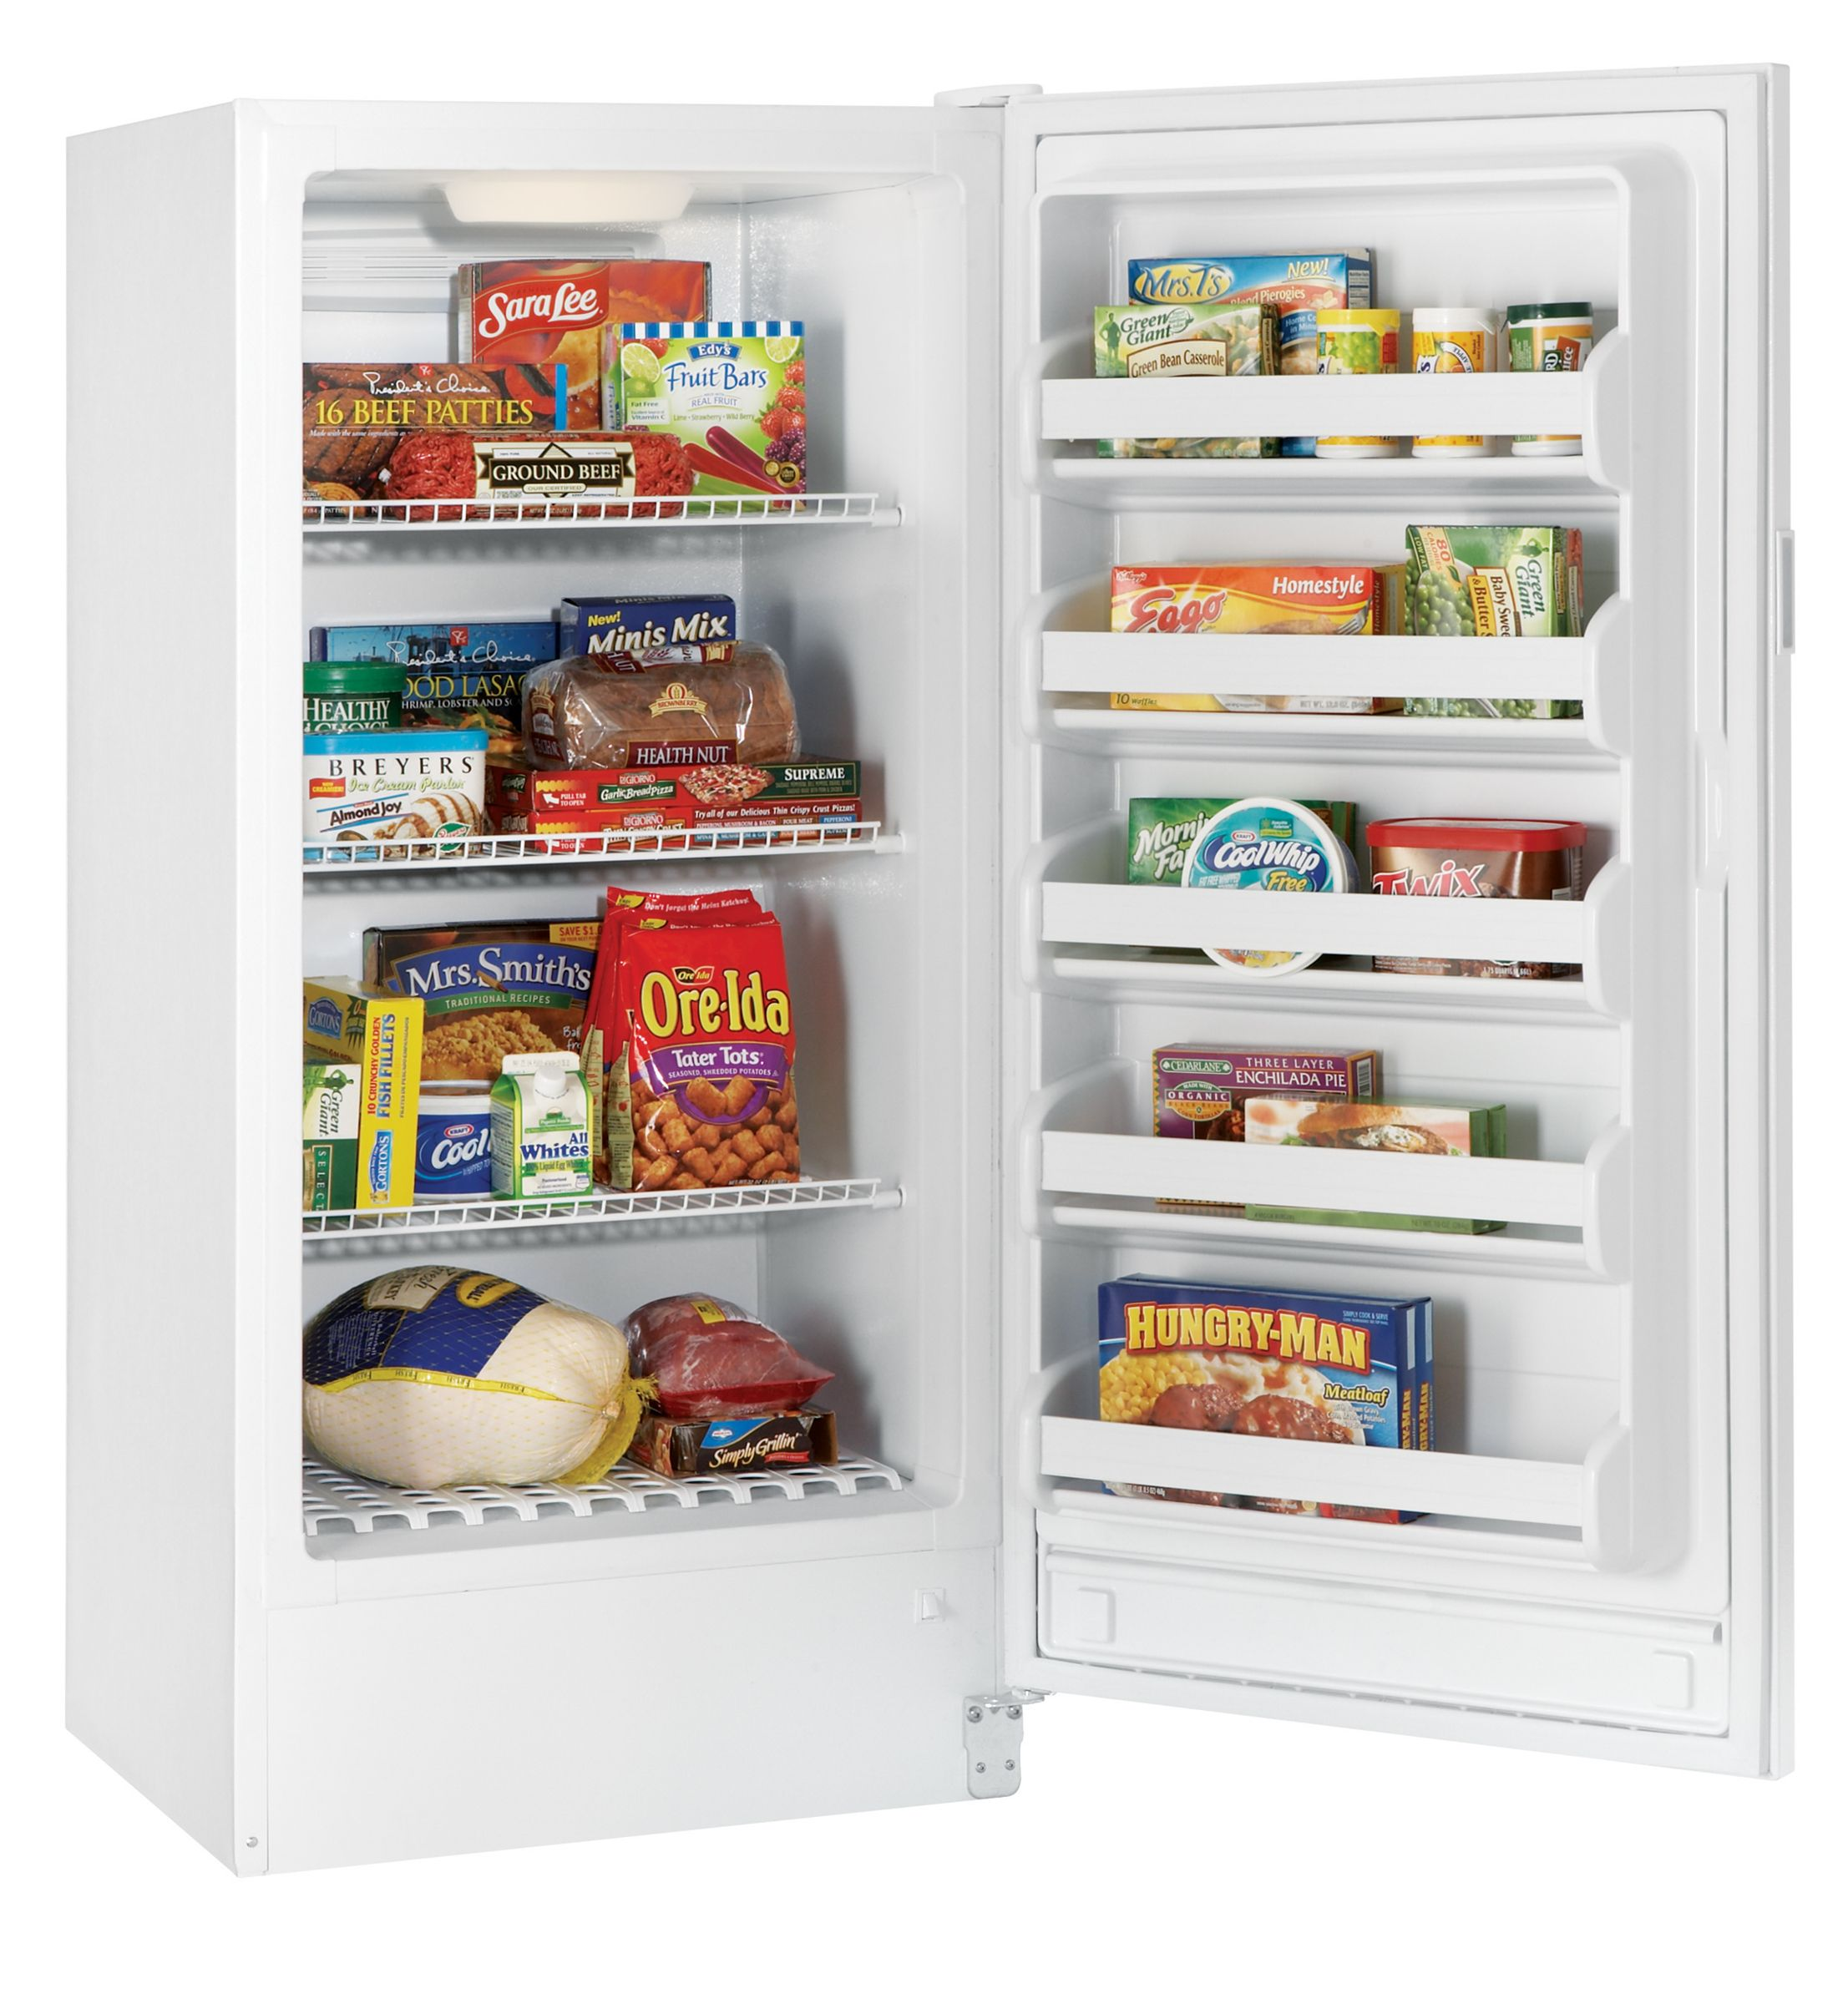 Kenmore 12.1 cu. ft. Upright Freezer